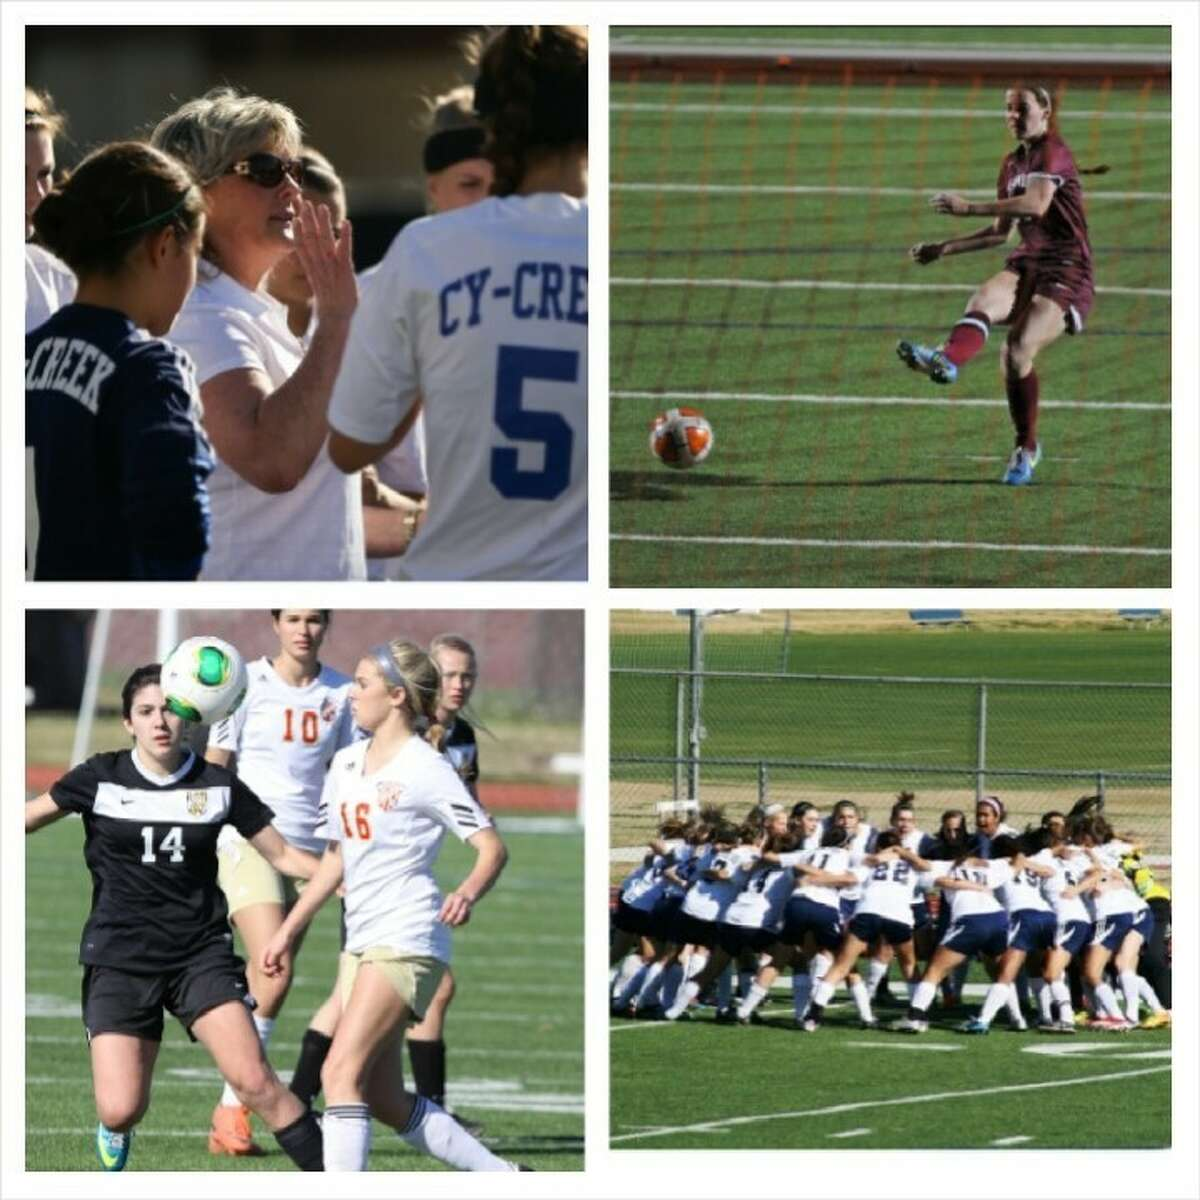 Clockwise, the 17-5A girls soccer playoff teams: Cy Creek, Cy-Fair, Cy Woods and Cy Ranch.